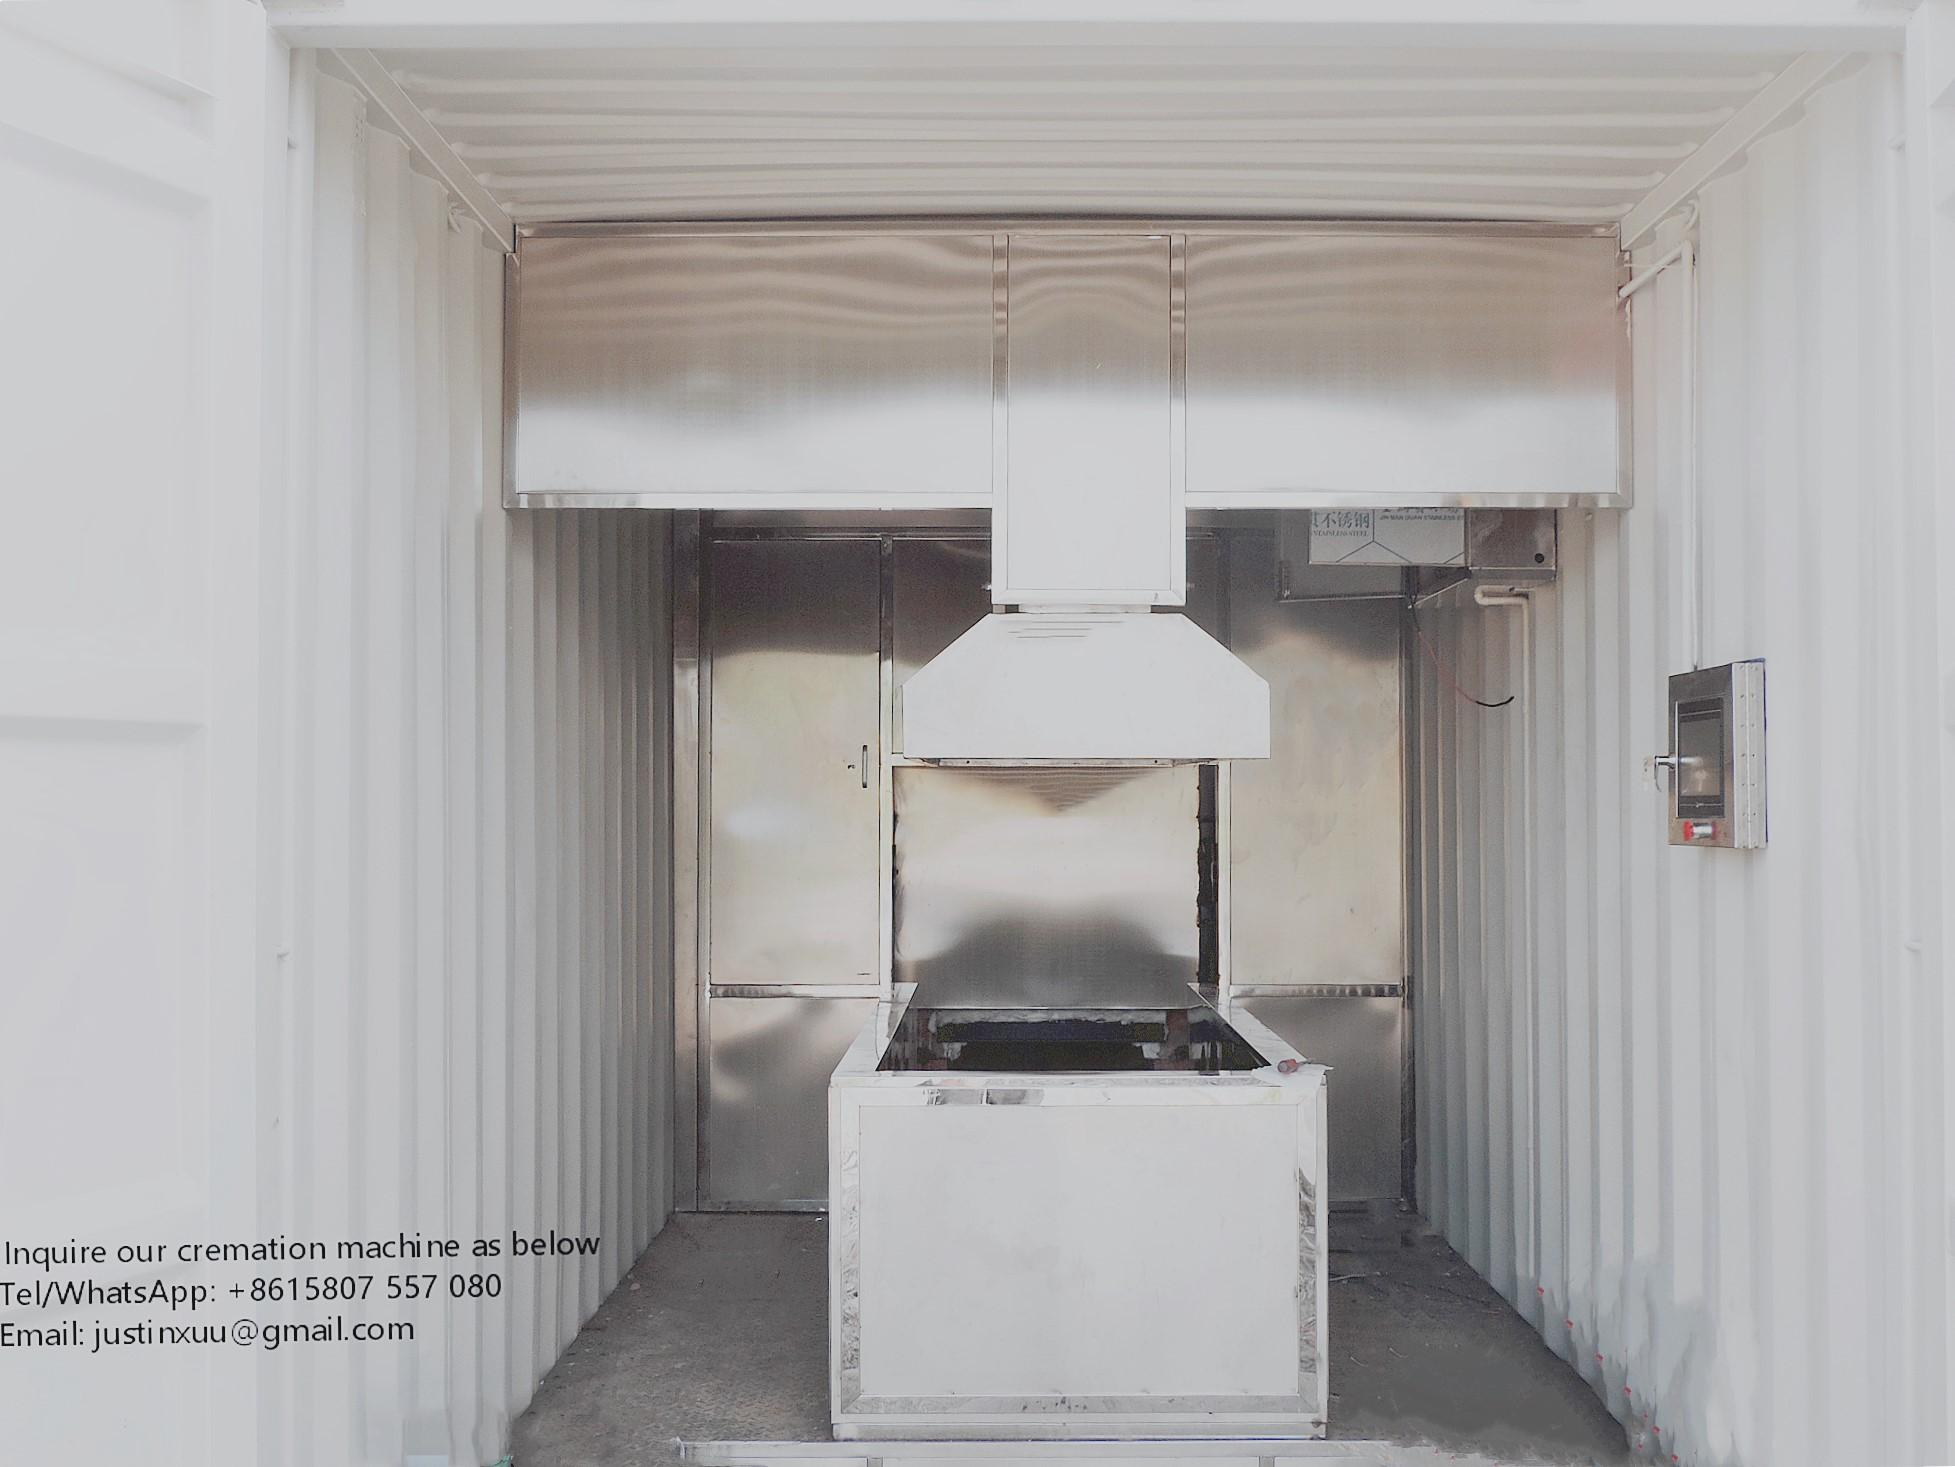 Human movable crematorium incinerator type for virus death designed for Malaysia